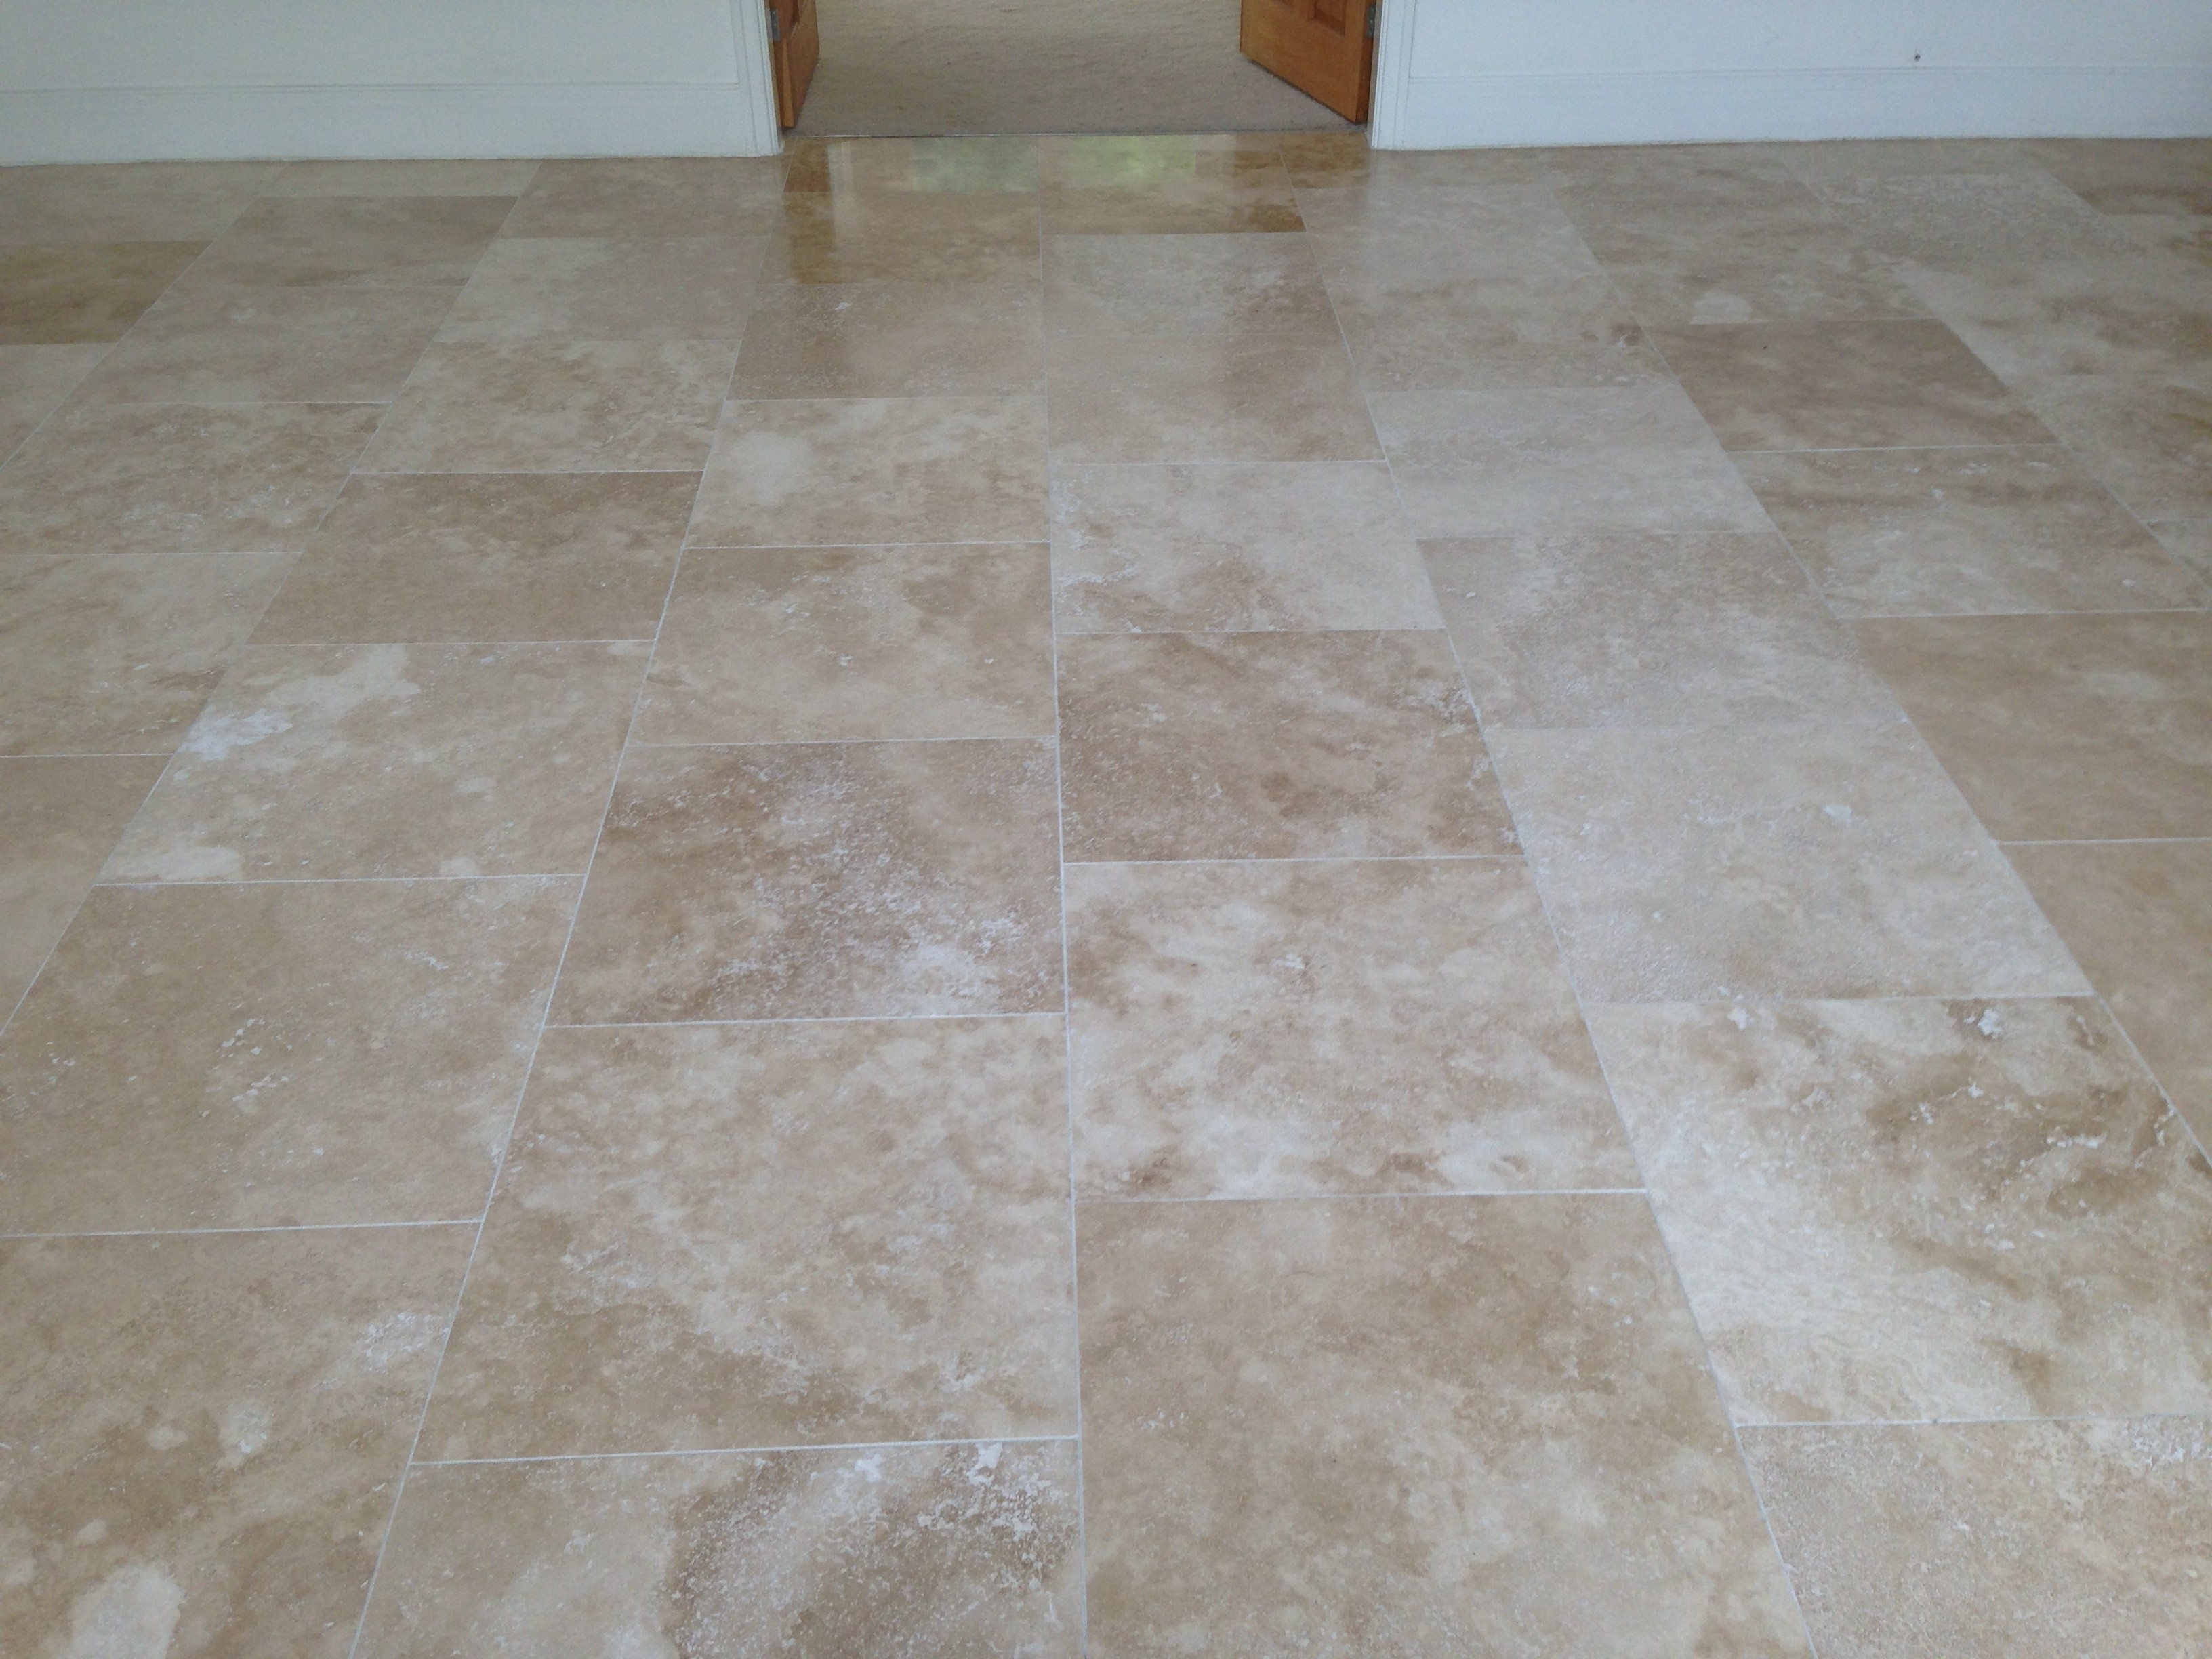 Travertine Floor Cleaning Amp Polishing Wilmslow